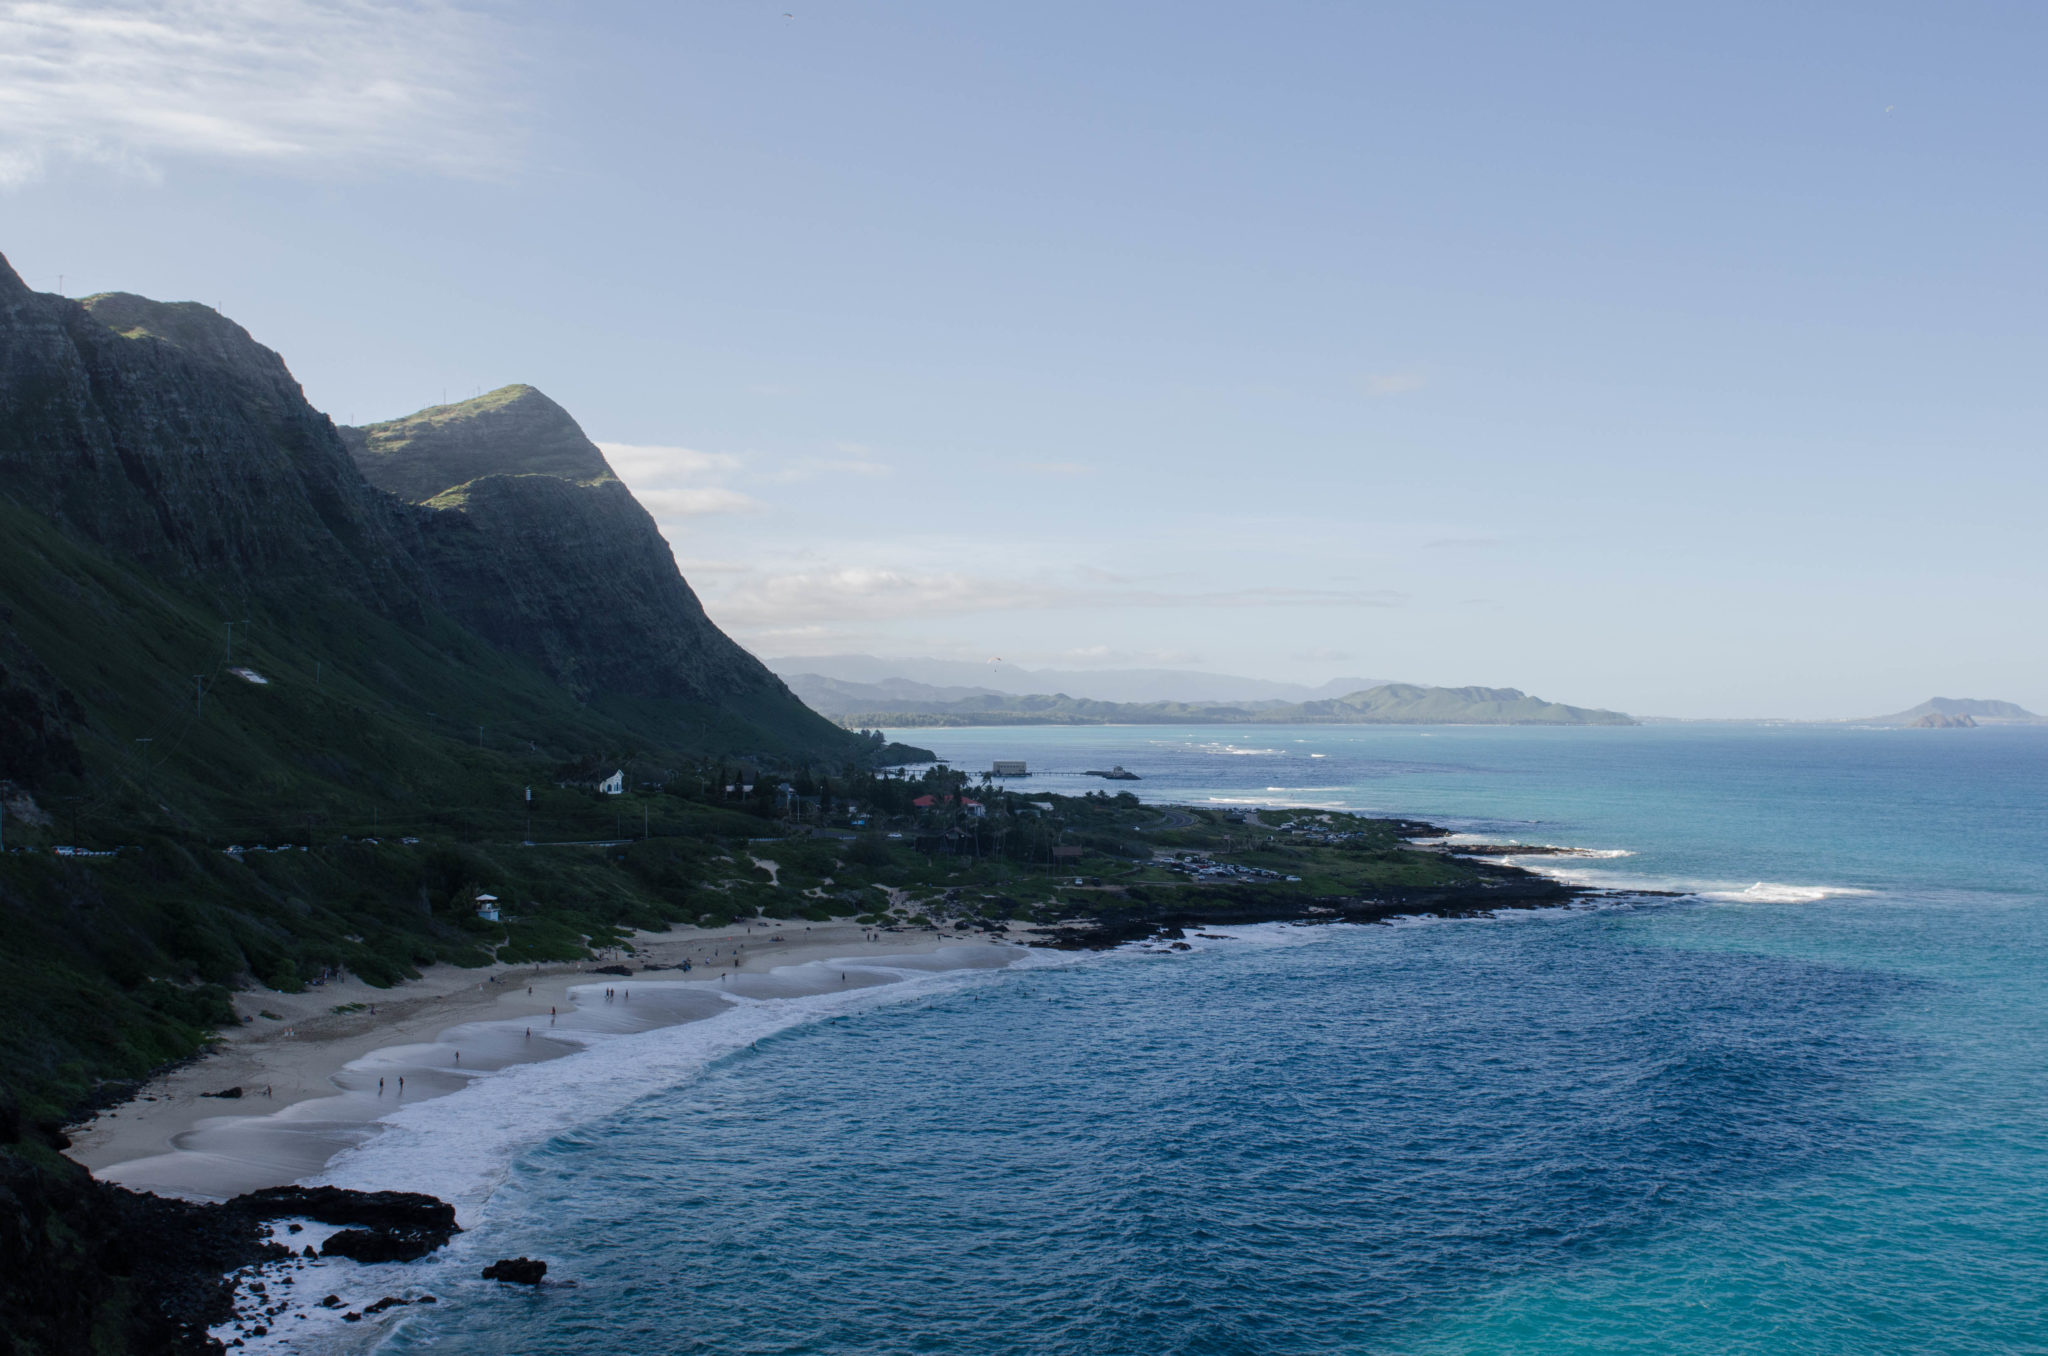 Hawaii Guide: The best of Hawaii now in our free travel guide